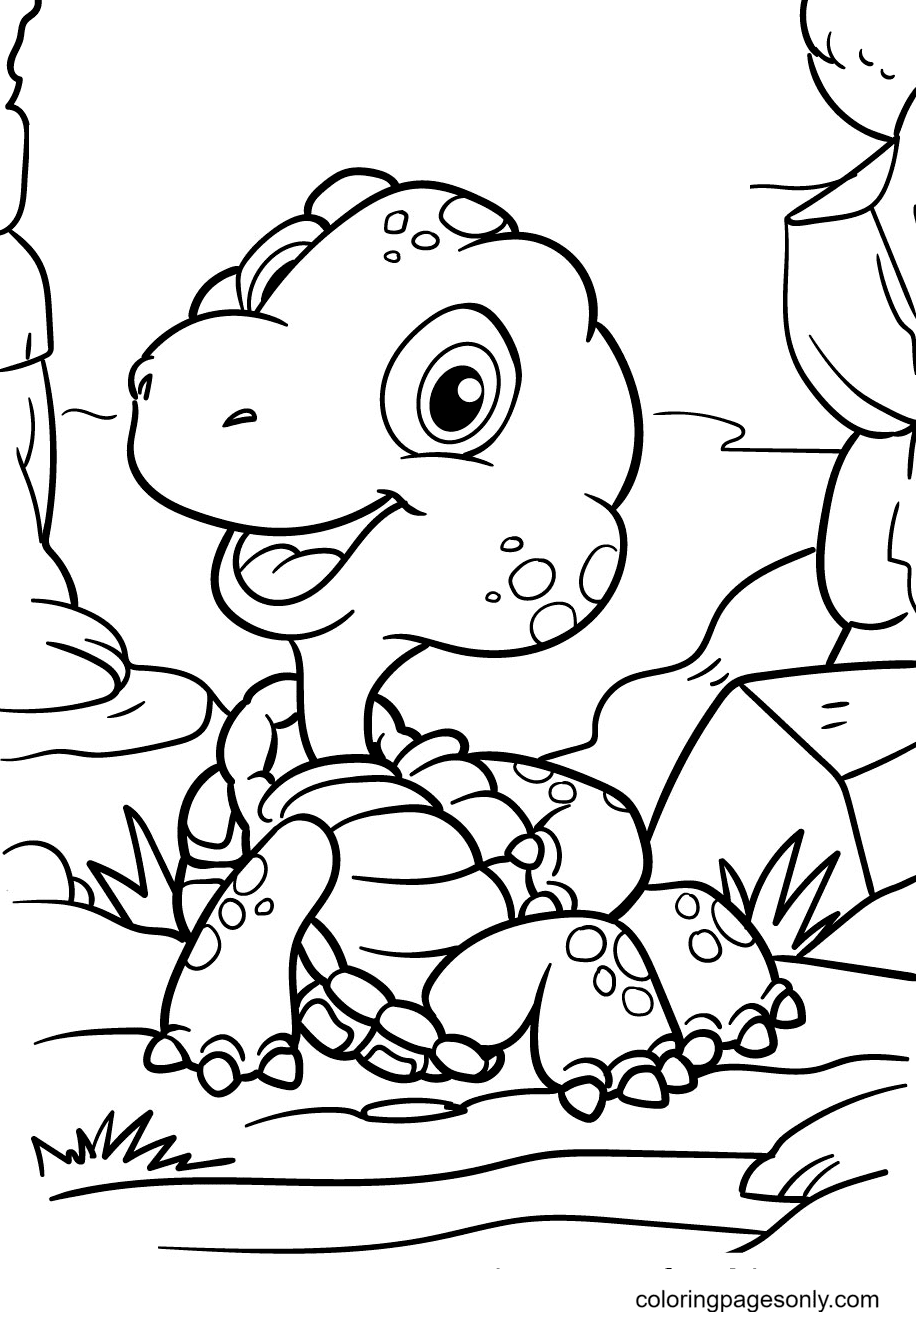 Relaxing Turtle Coloring Page